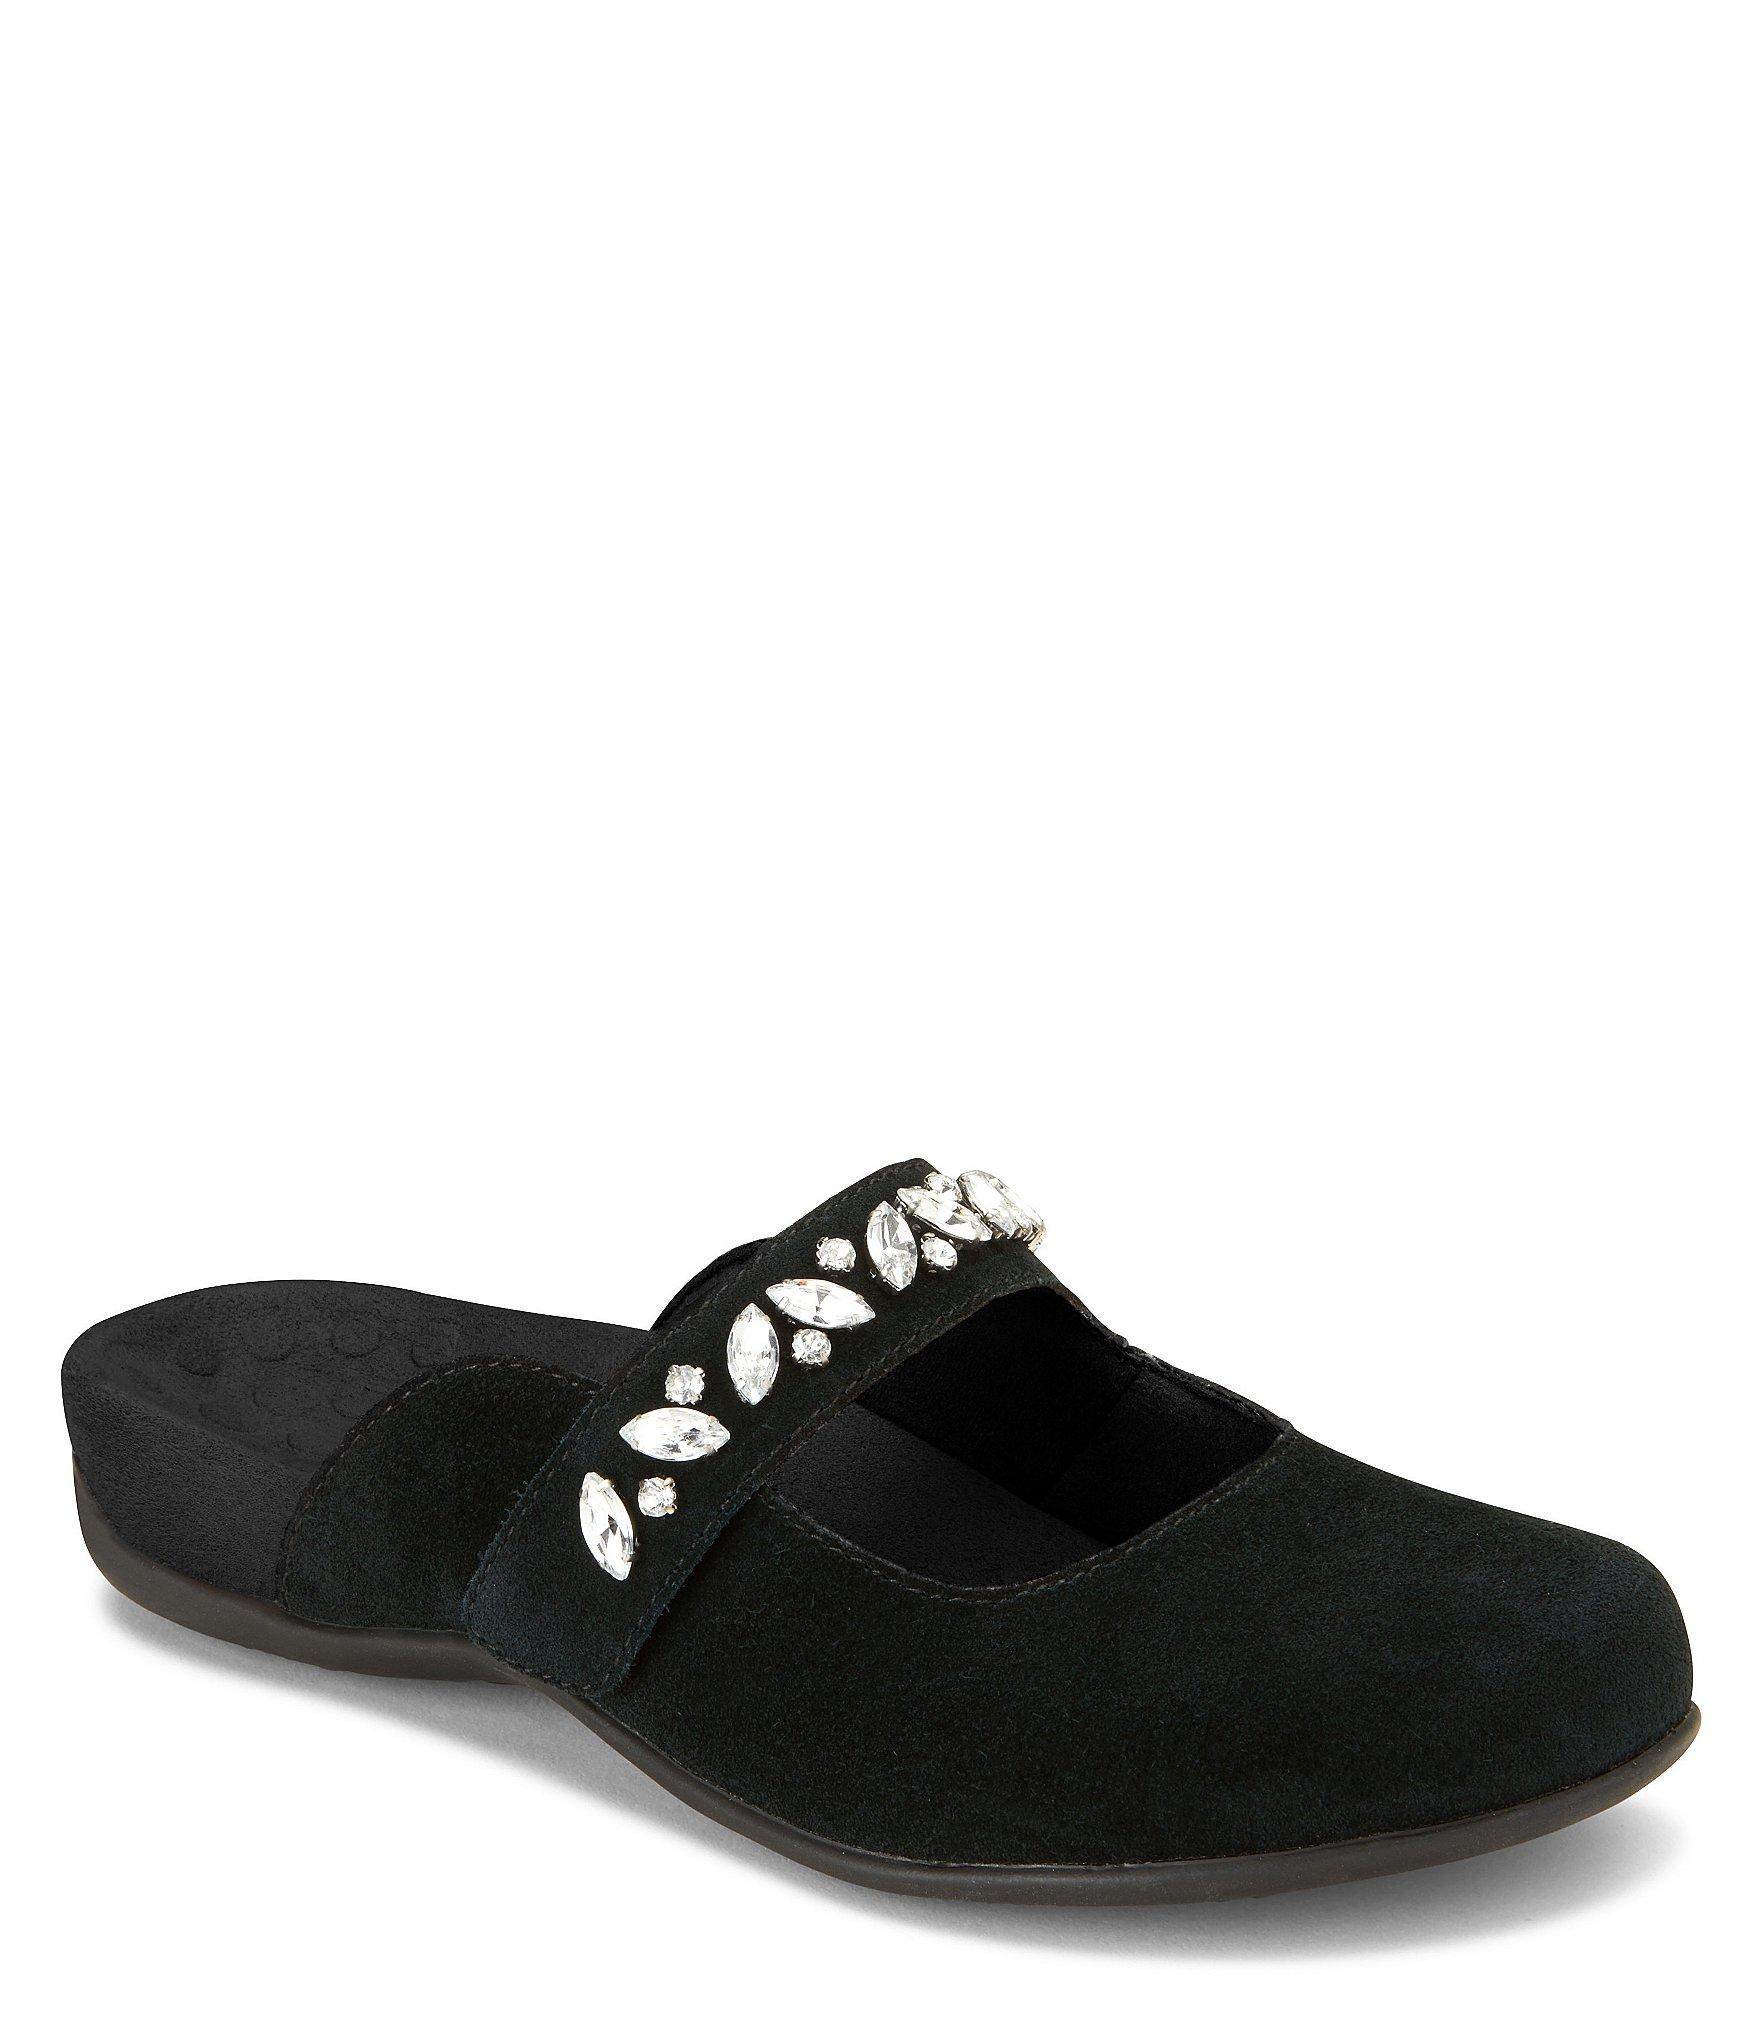 ec5fb2590 Lyst - Vionic Jenelle Bejeweled Suede Clogs in Black